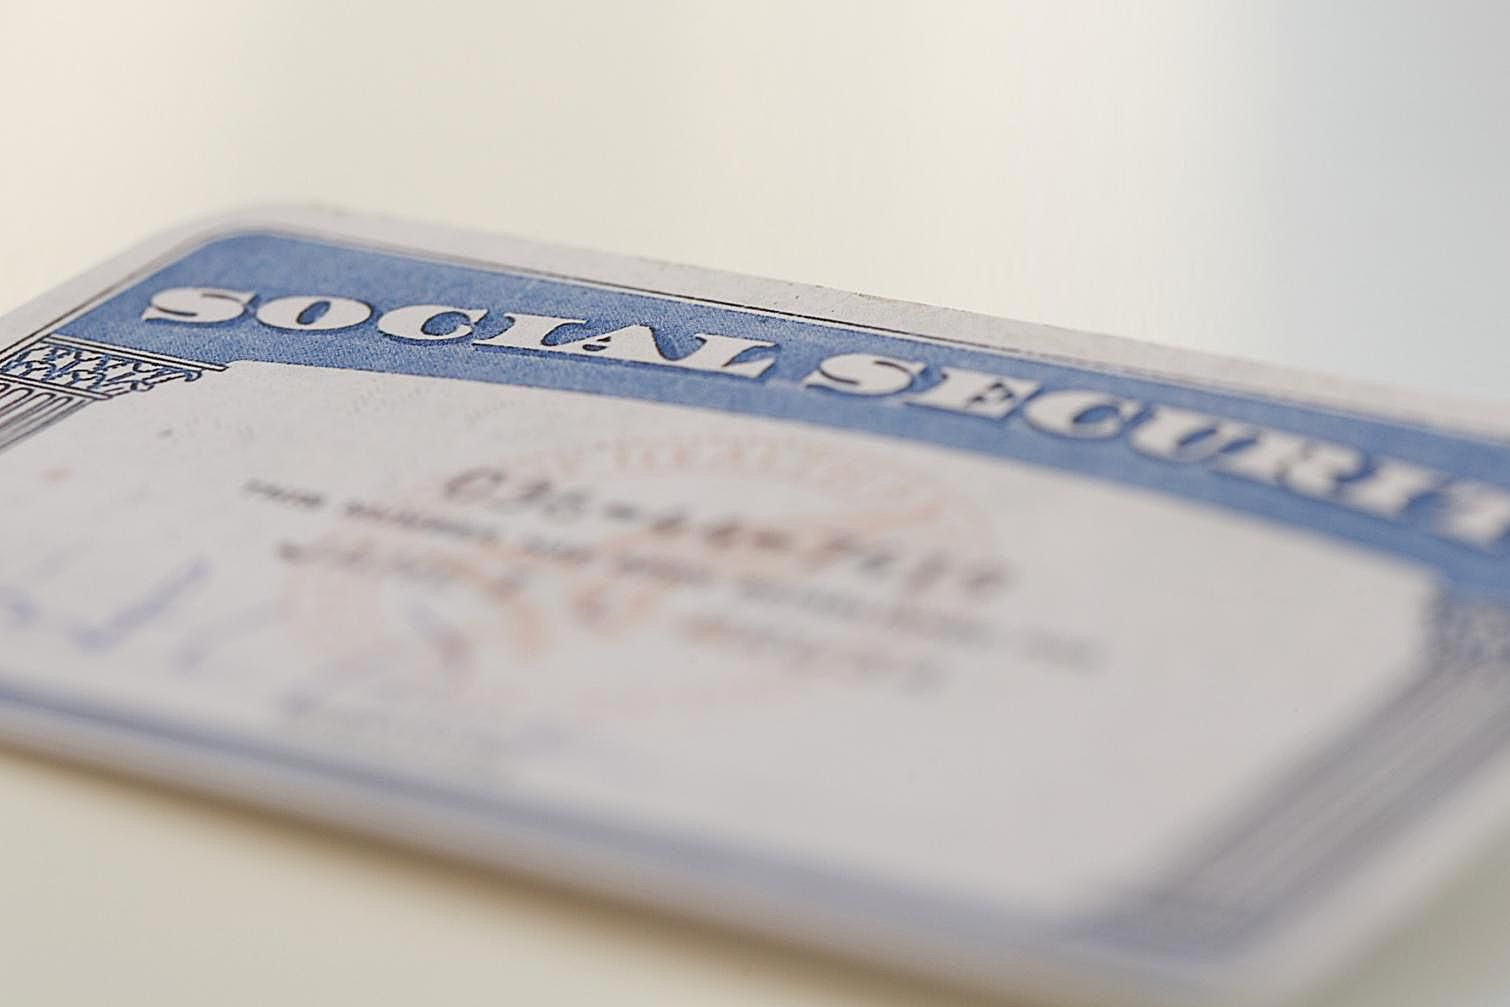 How to obtain a marriage license in memphis where to get social security card help in memphis xflitez Choice Image